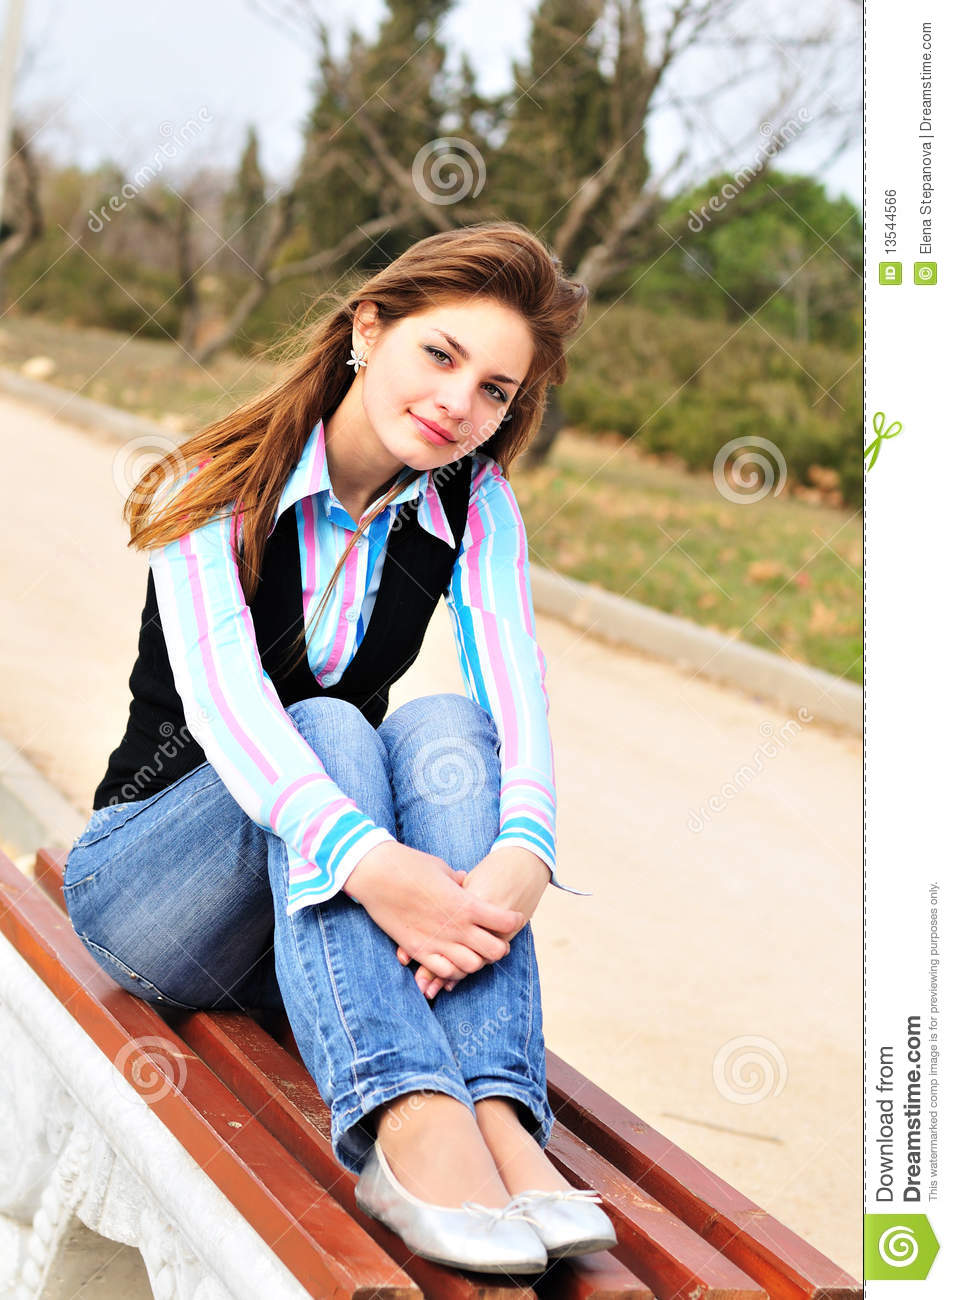 Teen Girl Resting In The Park Royalty Free Stock Image - Image ...